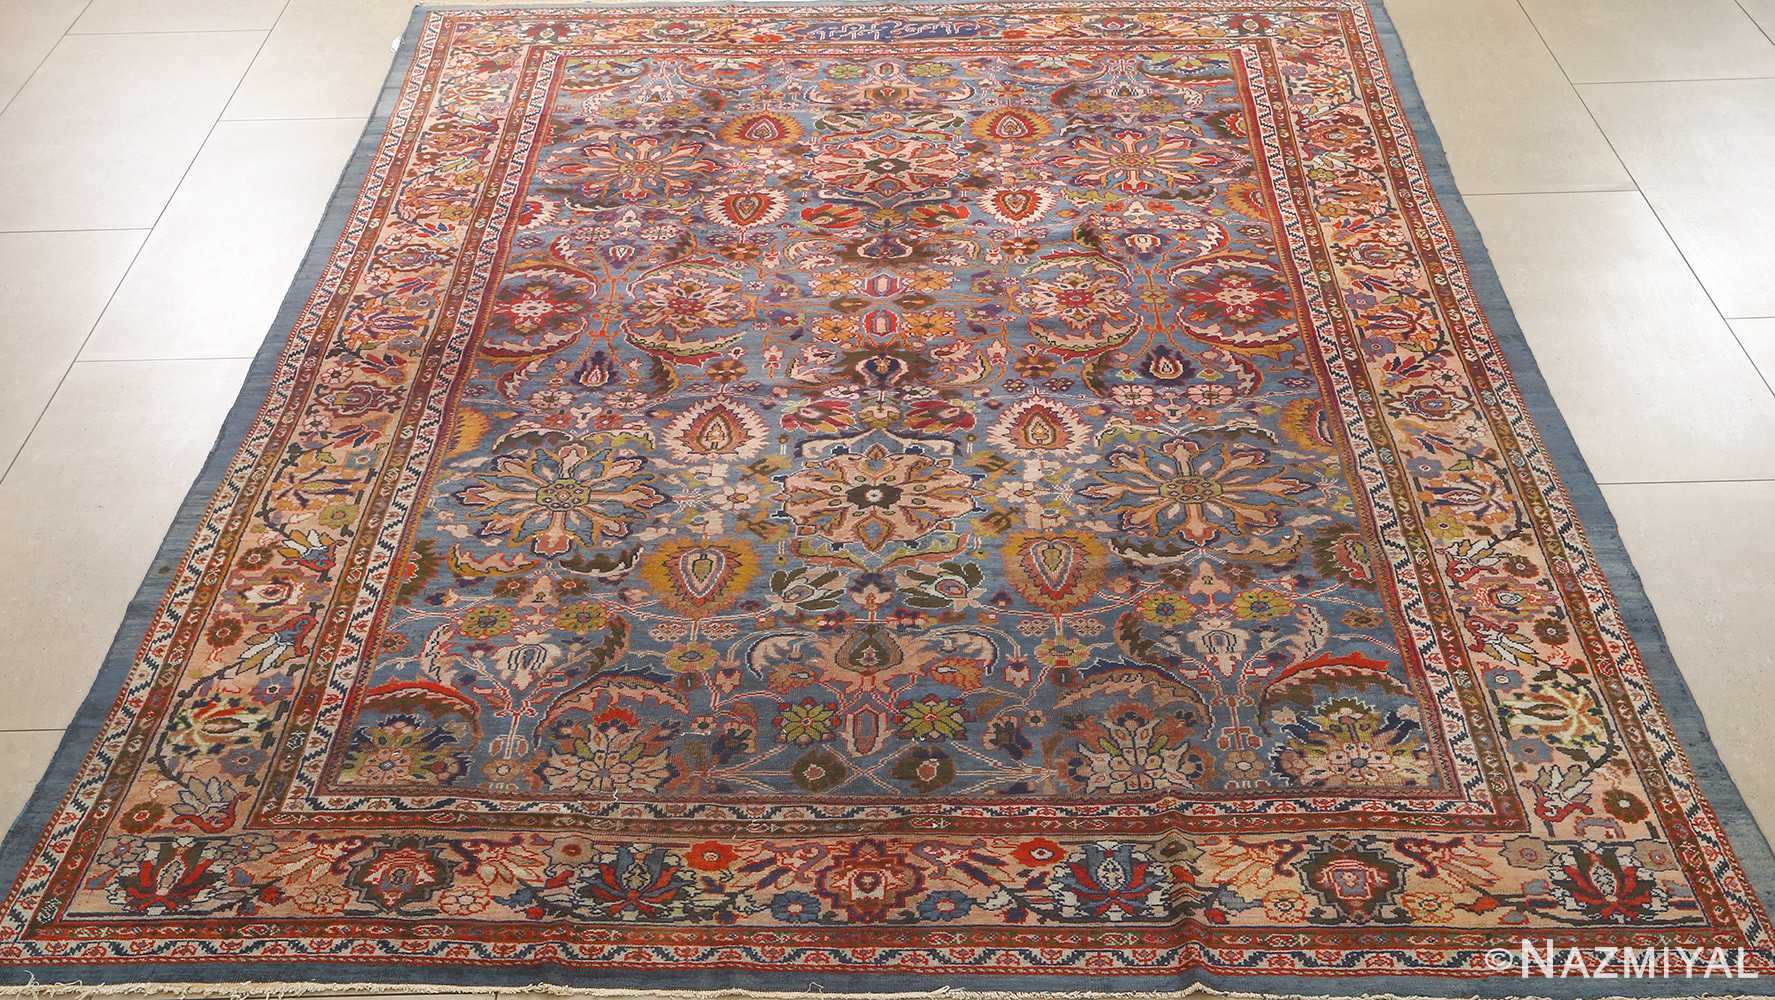 antique blue background zigler sultanabad persian rug 51060 full Nazmiyal